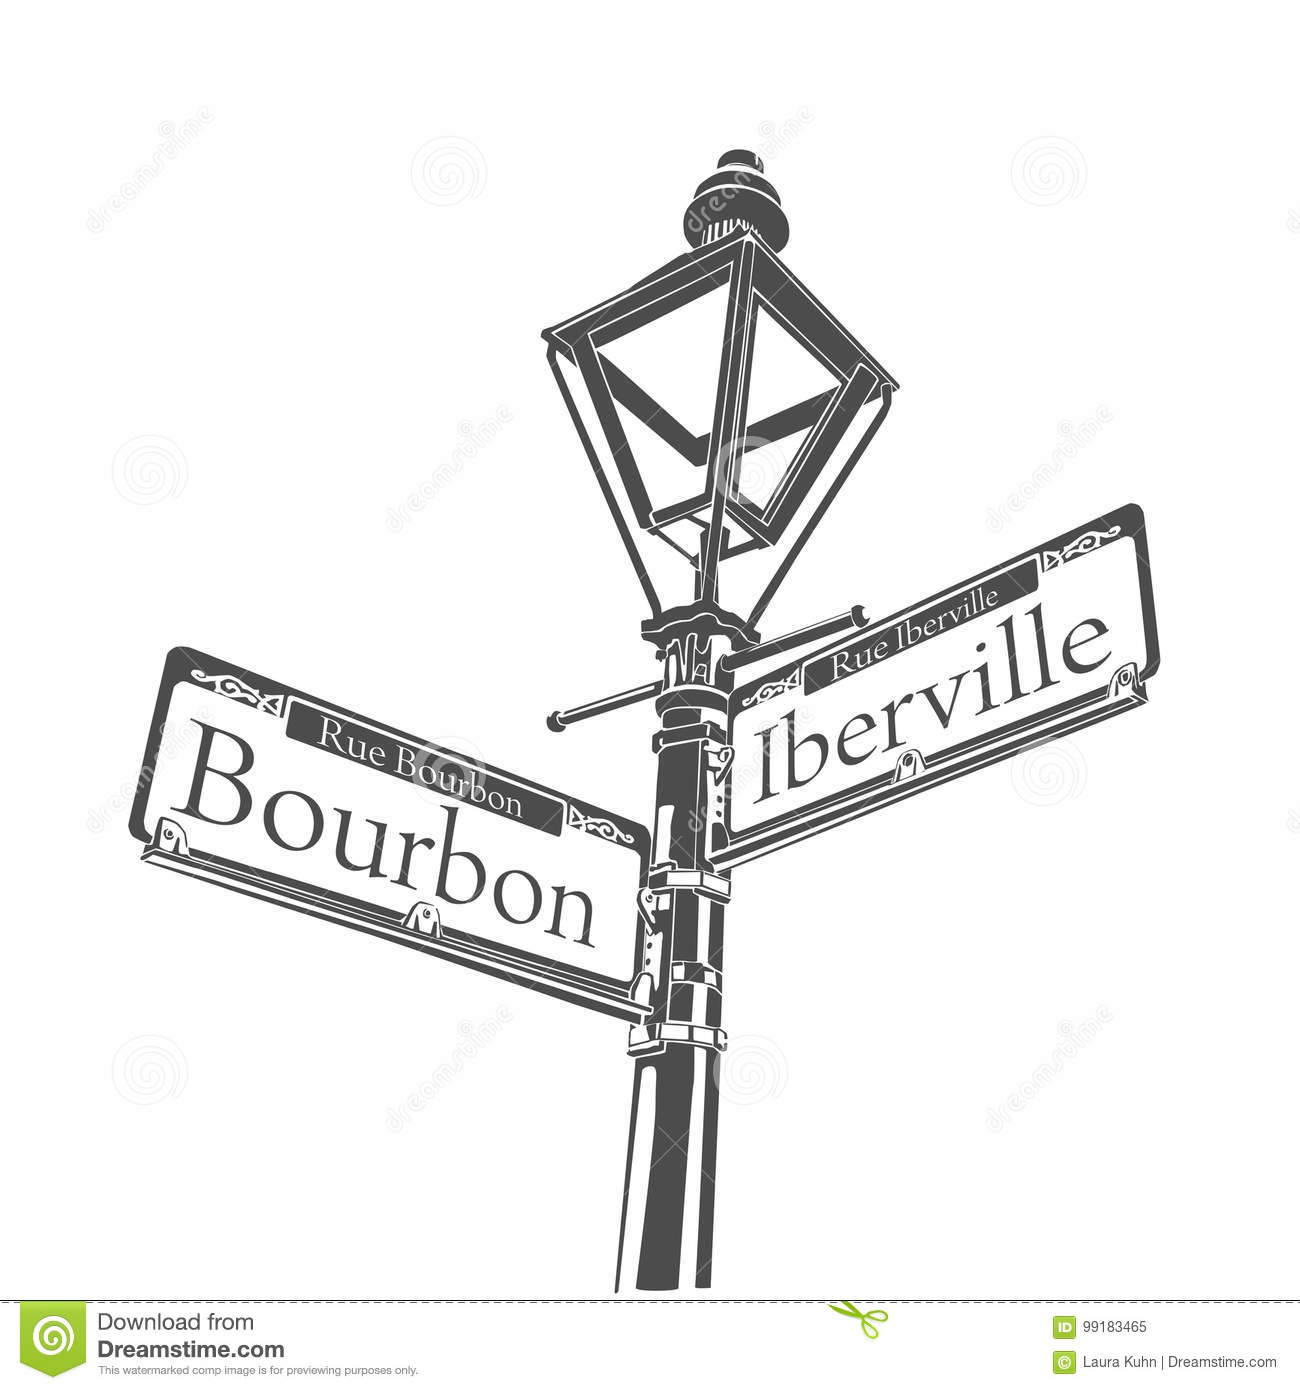 new orleans culture bourbon street lamp sign new orleans culture bourbon street lamp sign traditional street signs streetlight 99183465 delco light relay wiring diagram auto electrical wiring diagram